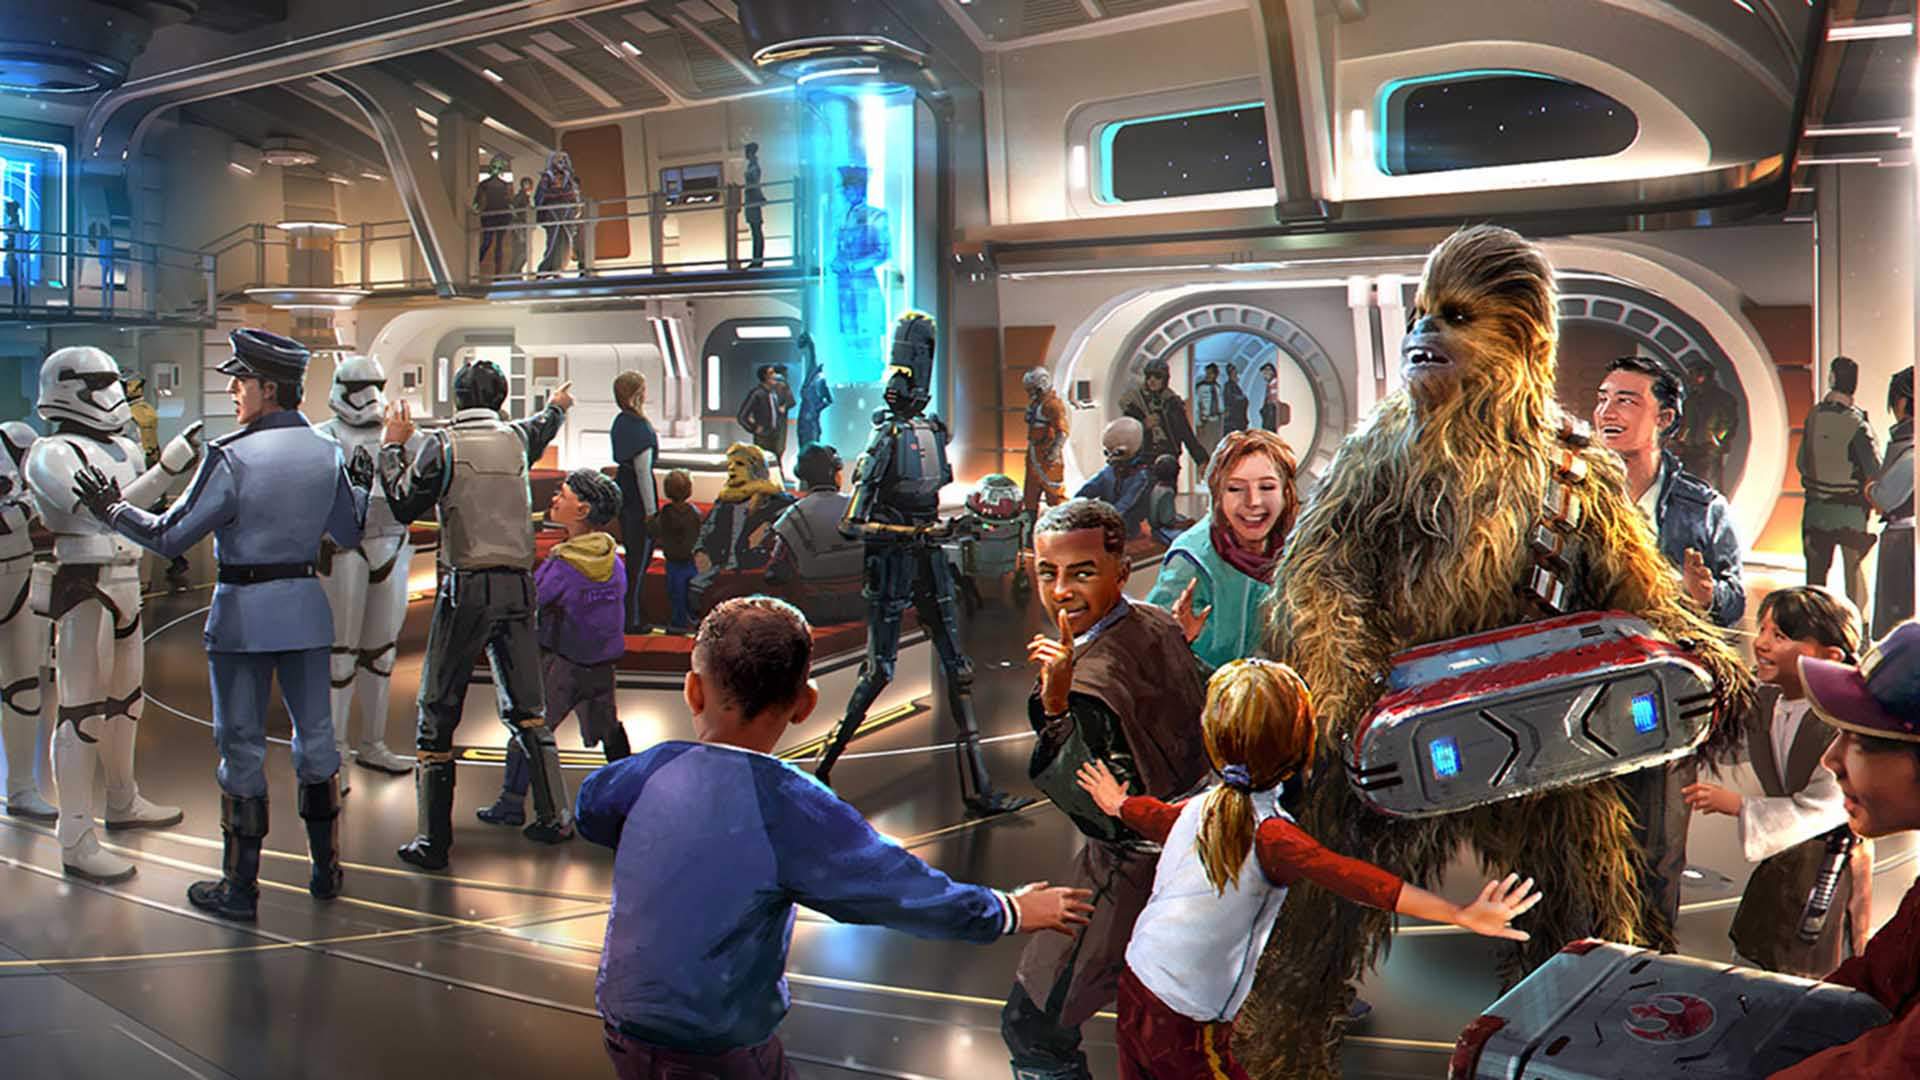 You Will Soon Be Able to Stay Onboard an Immersive 'Star Wars' Spaceship